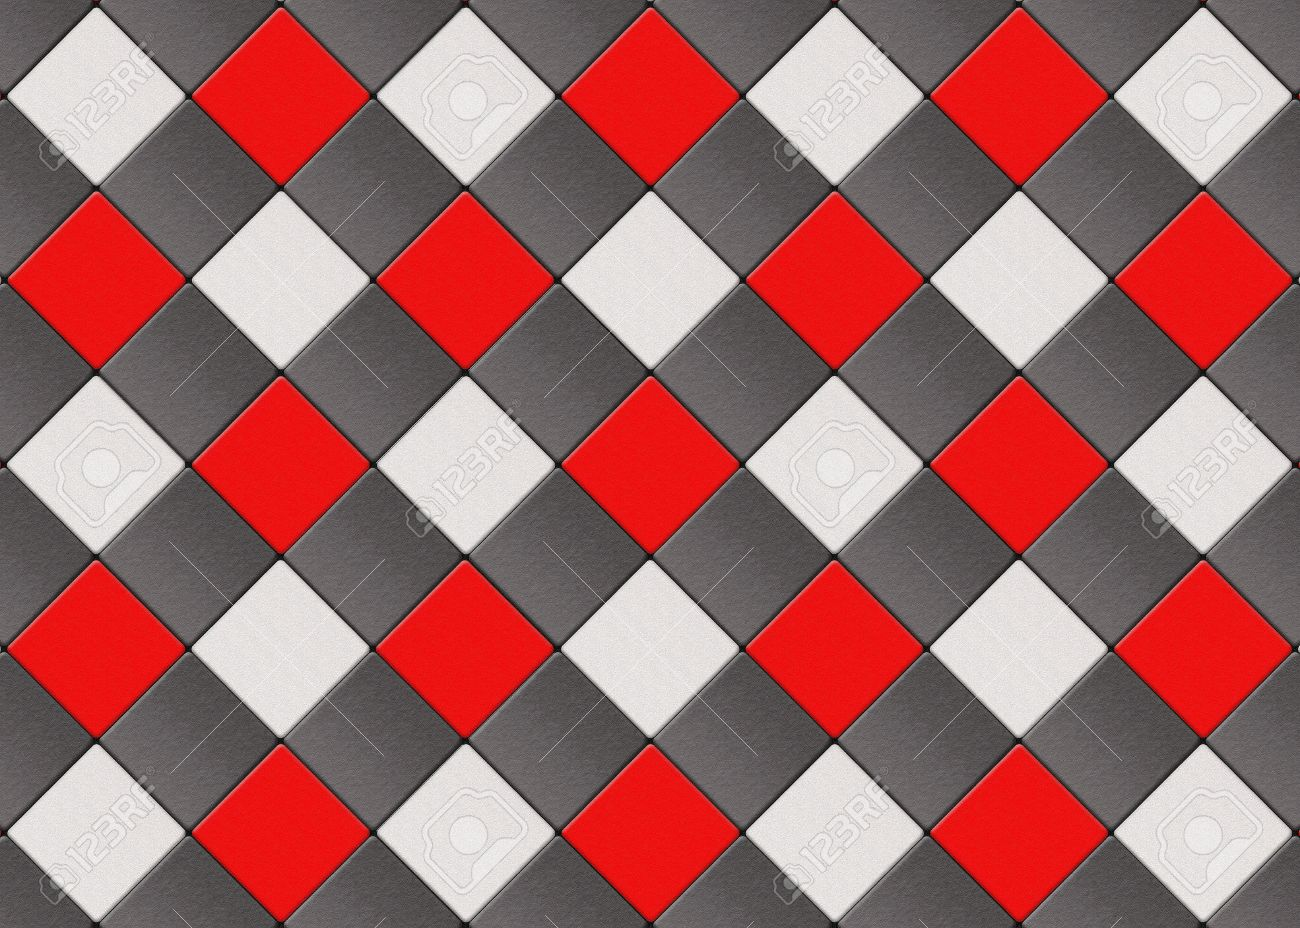 Black red and white checkered floor tiles stock photo picture and black red and white checkered floor tiles stock photo 39771311 dailygadgetfo Gallery